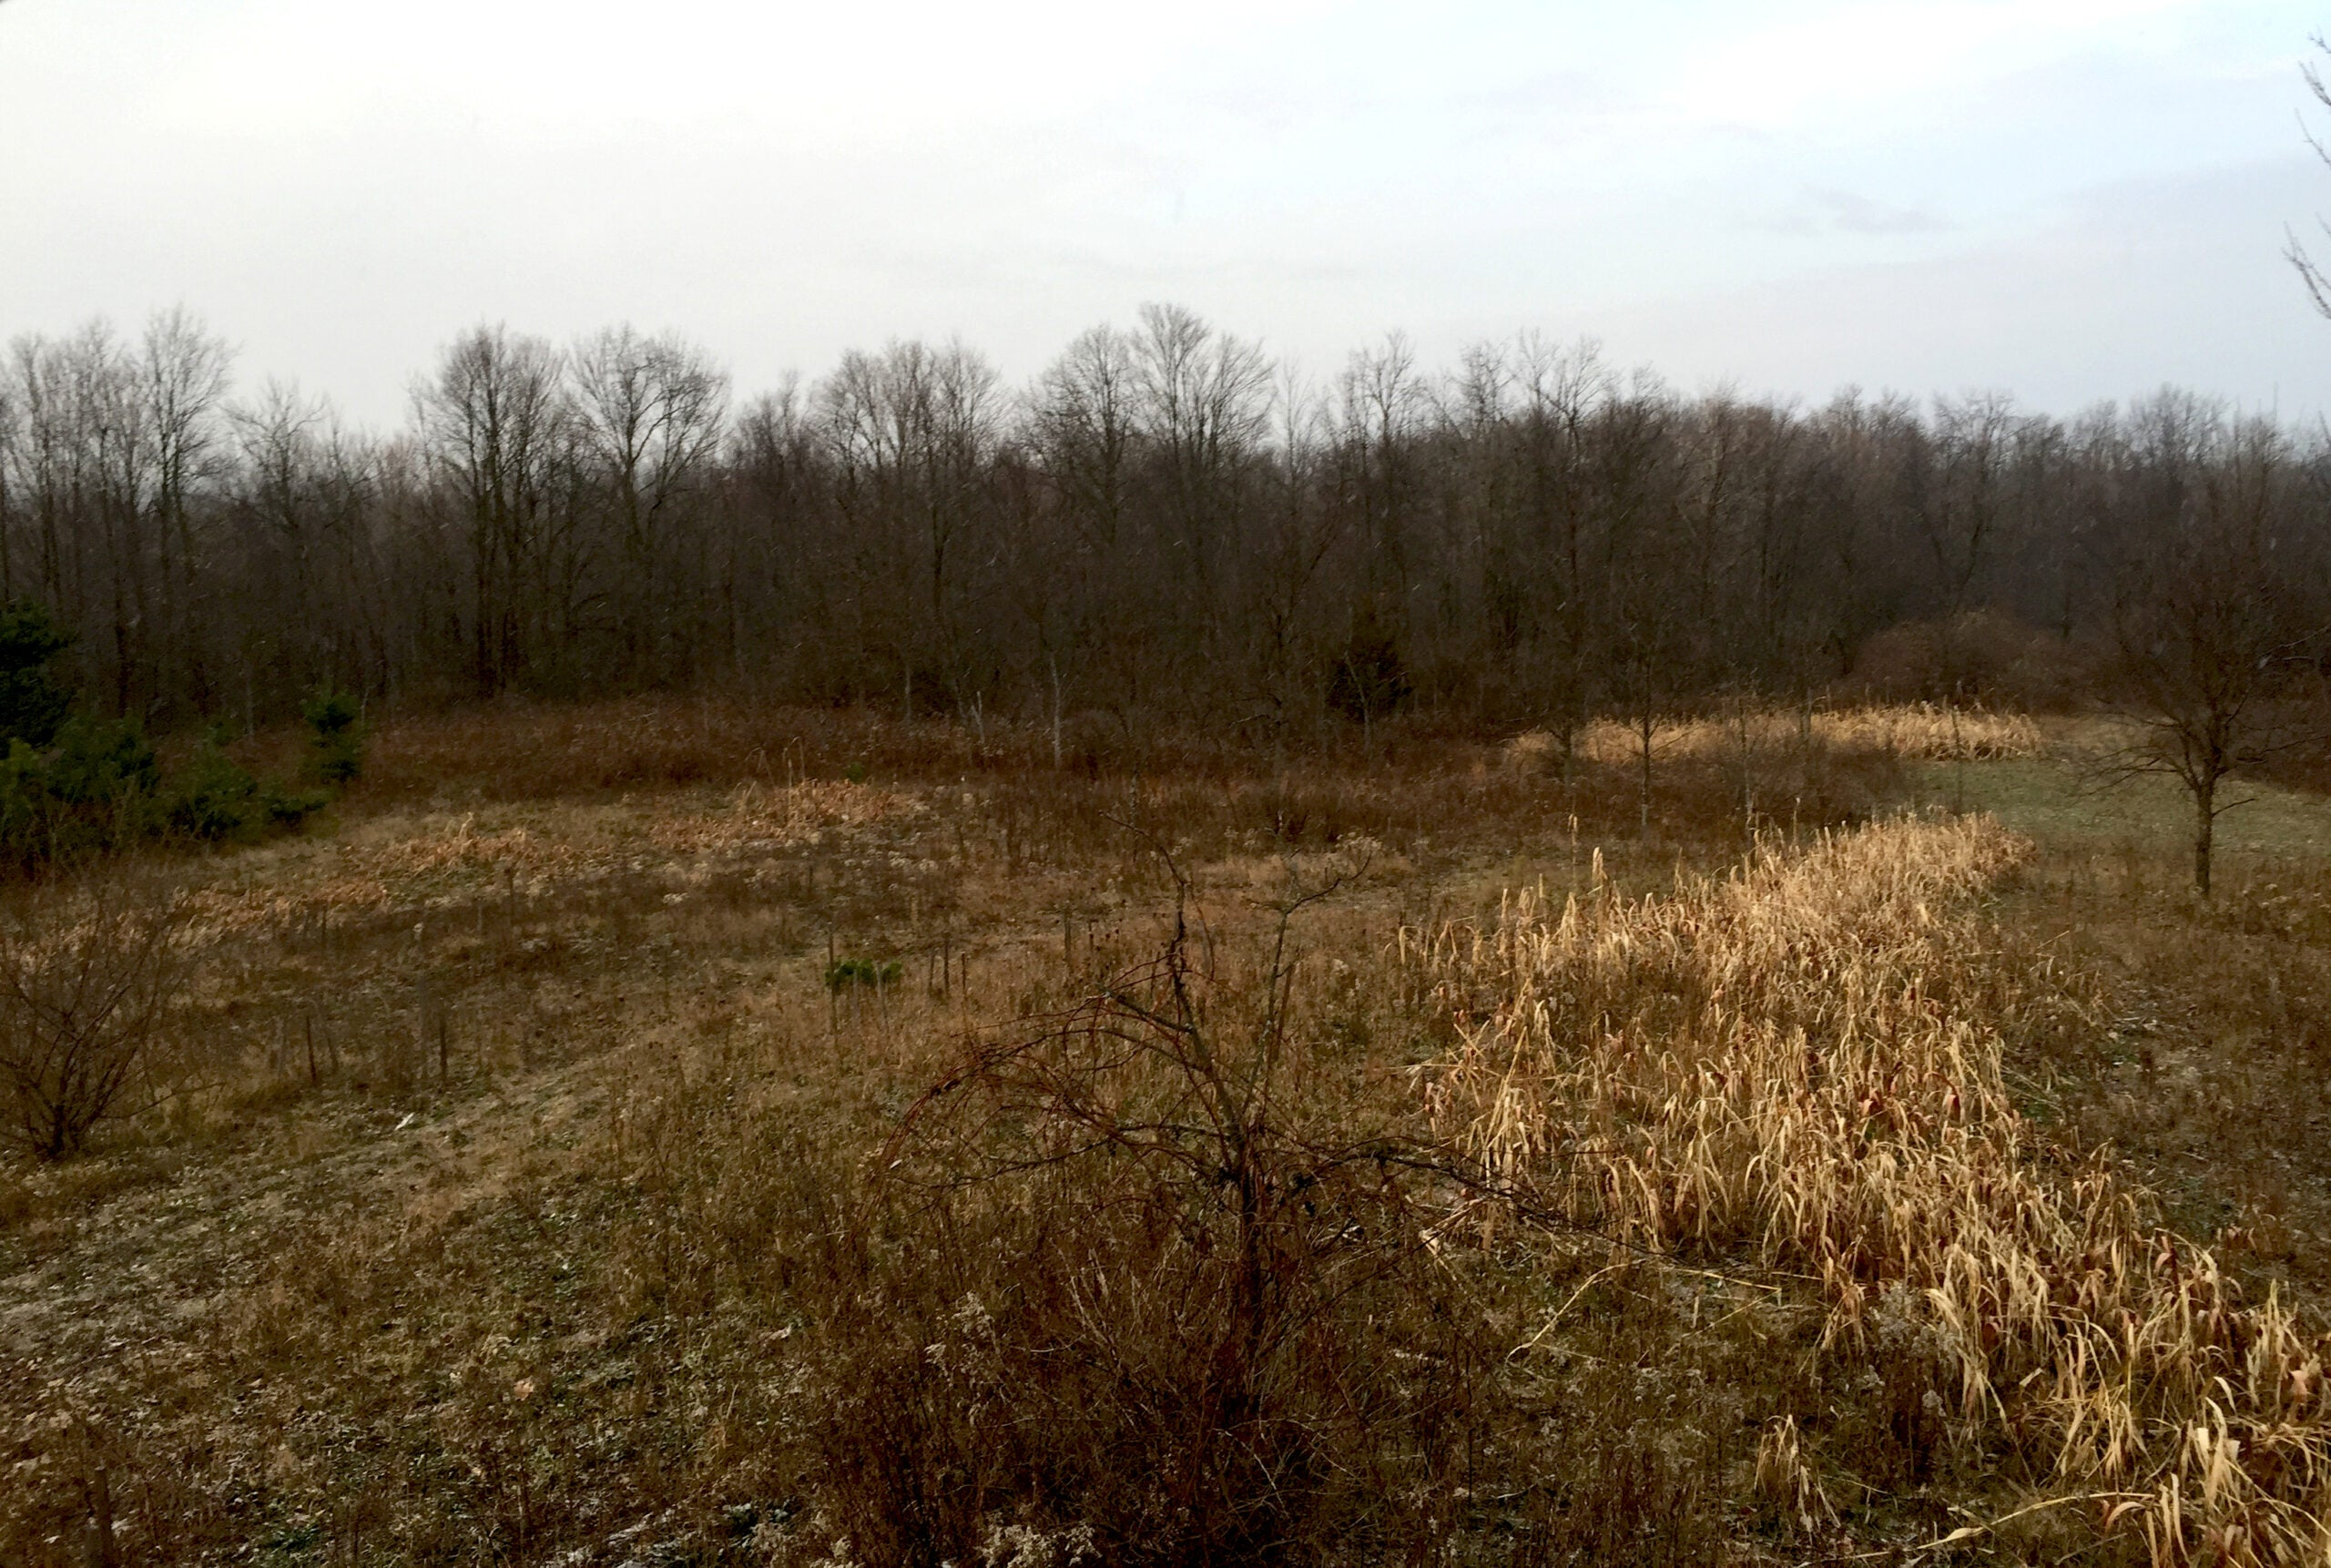 Micro Manager: Taking Inventory of Food and Cover for Whitetails